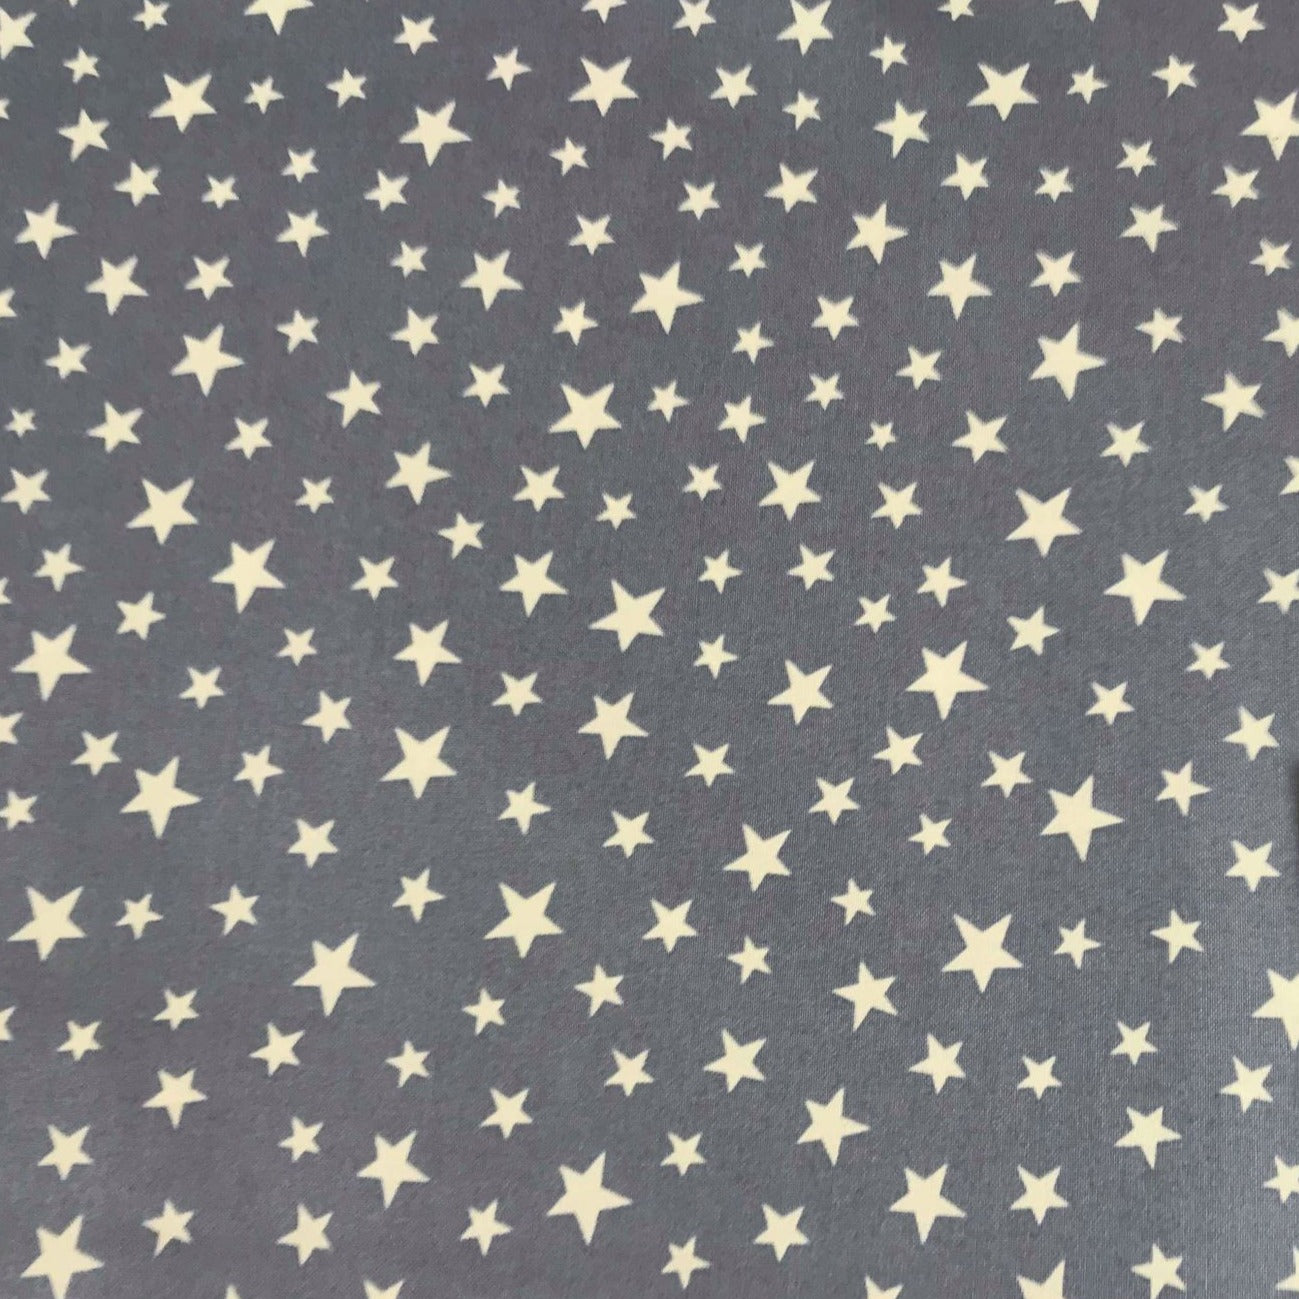 Grey Glow Stars -Lewis & Irene Cotton Woven- By the yard